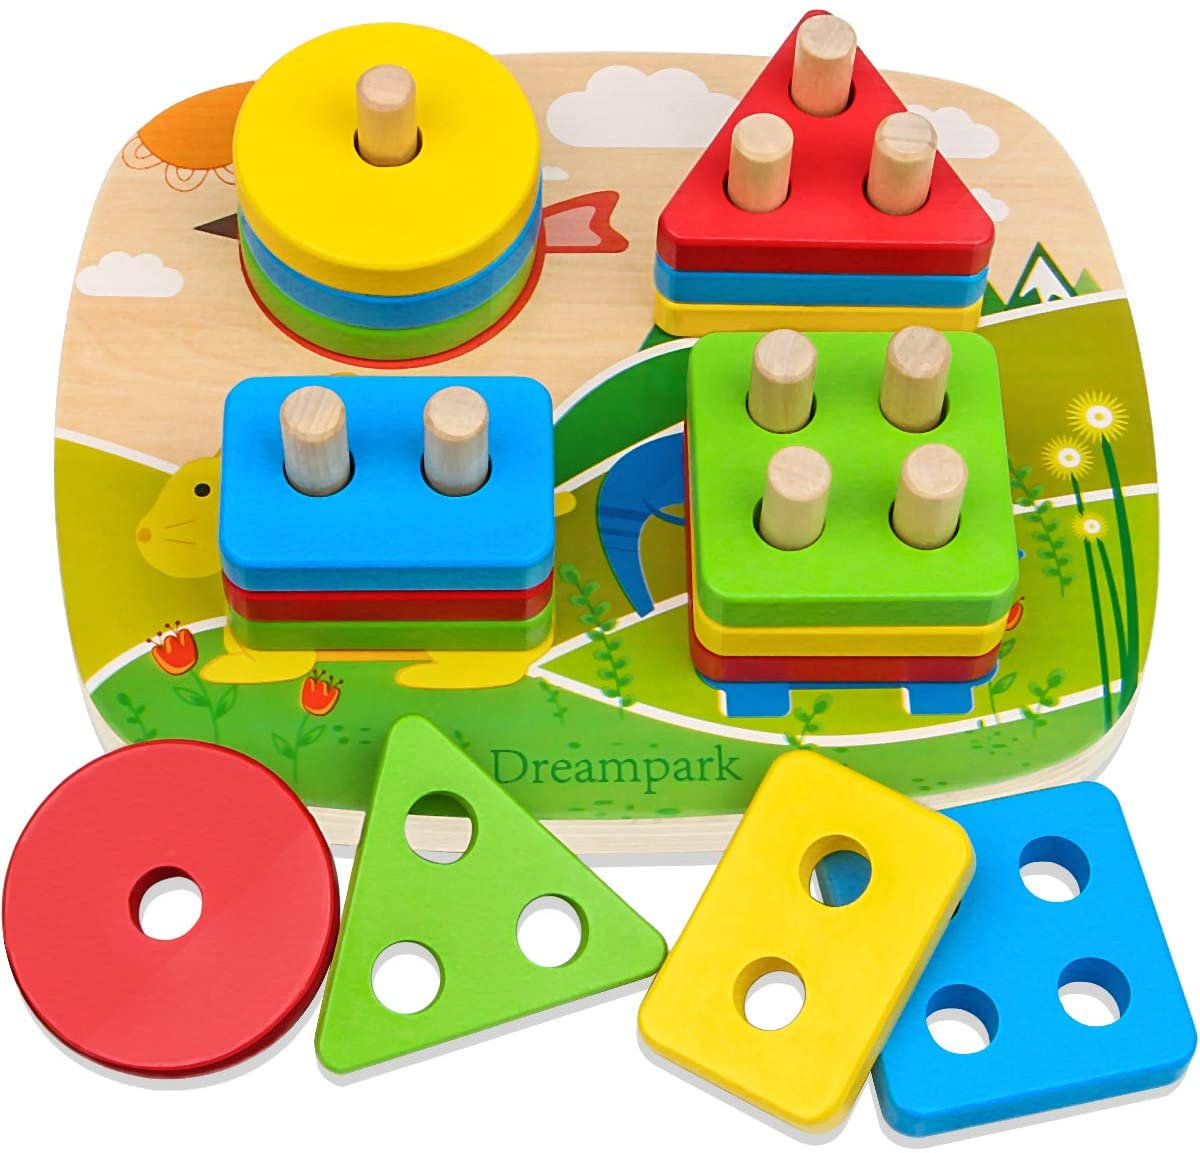 Dreampark Educational Toddler Toys for Boys Girls Age 1 2 3 4 and Up, Wooden Shape Color Recognition Preschool Stack and Sort Geometric Board Blocks for Kids Children, Non-Toxic